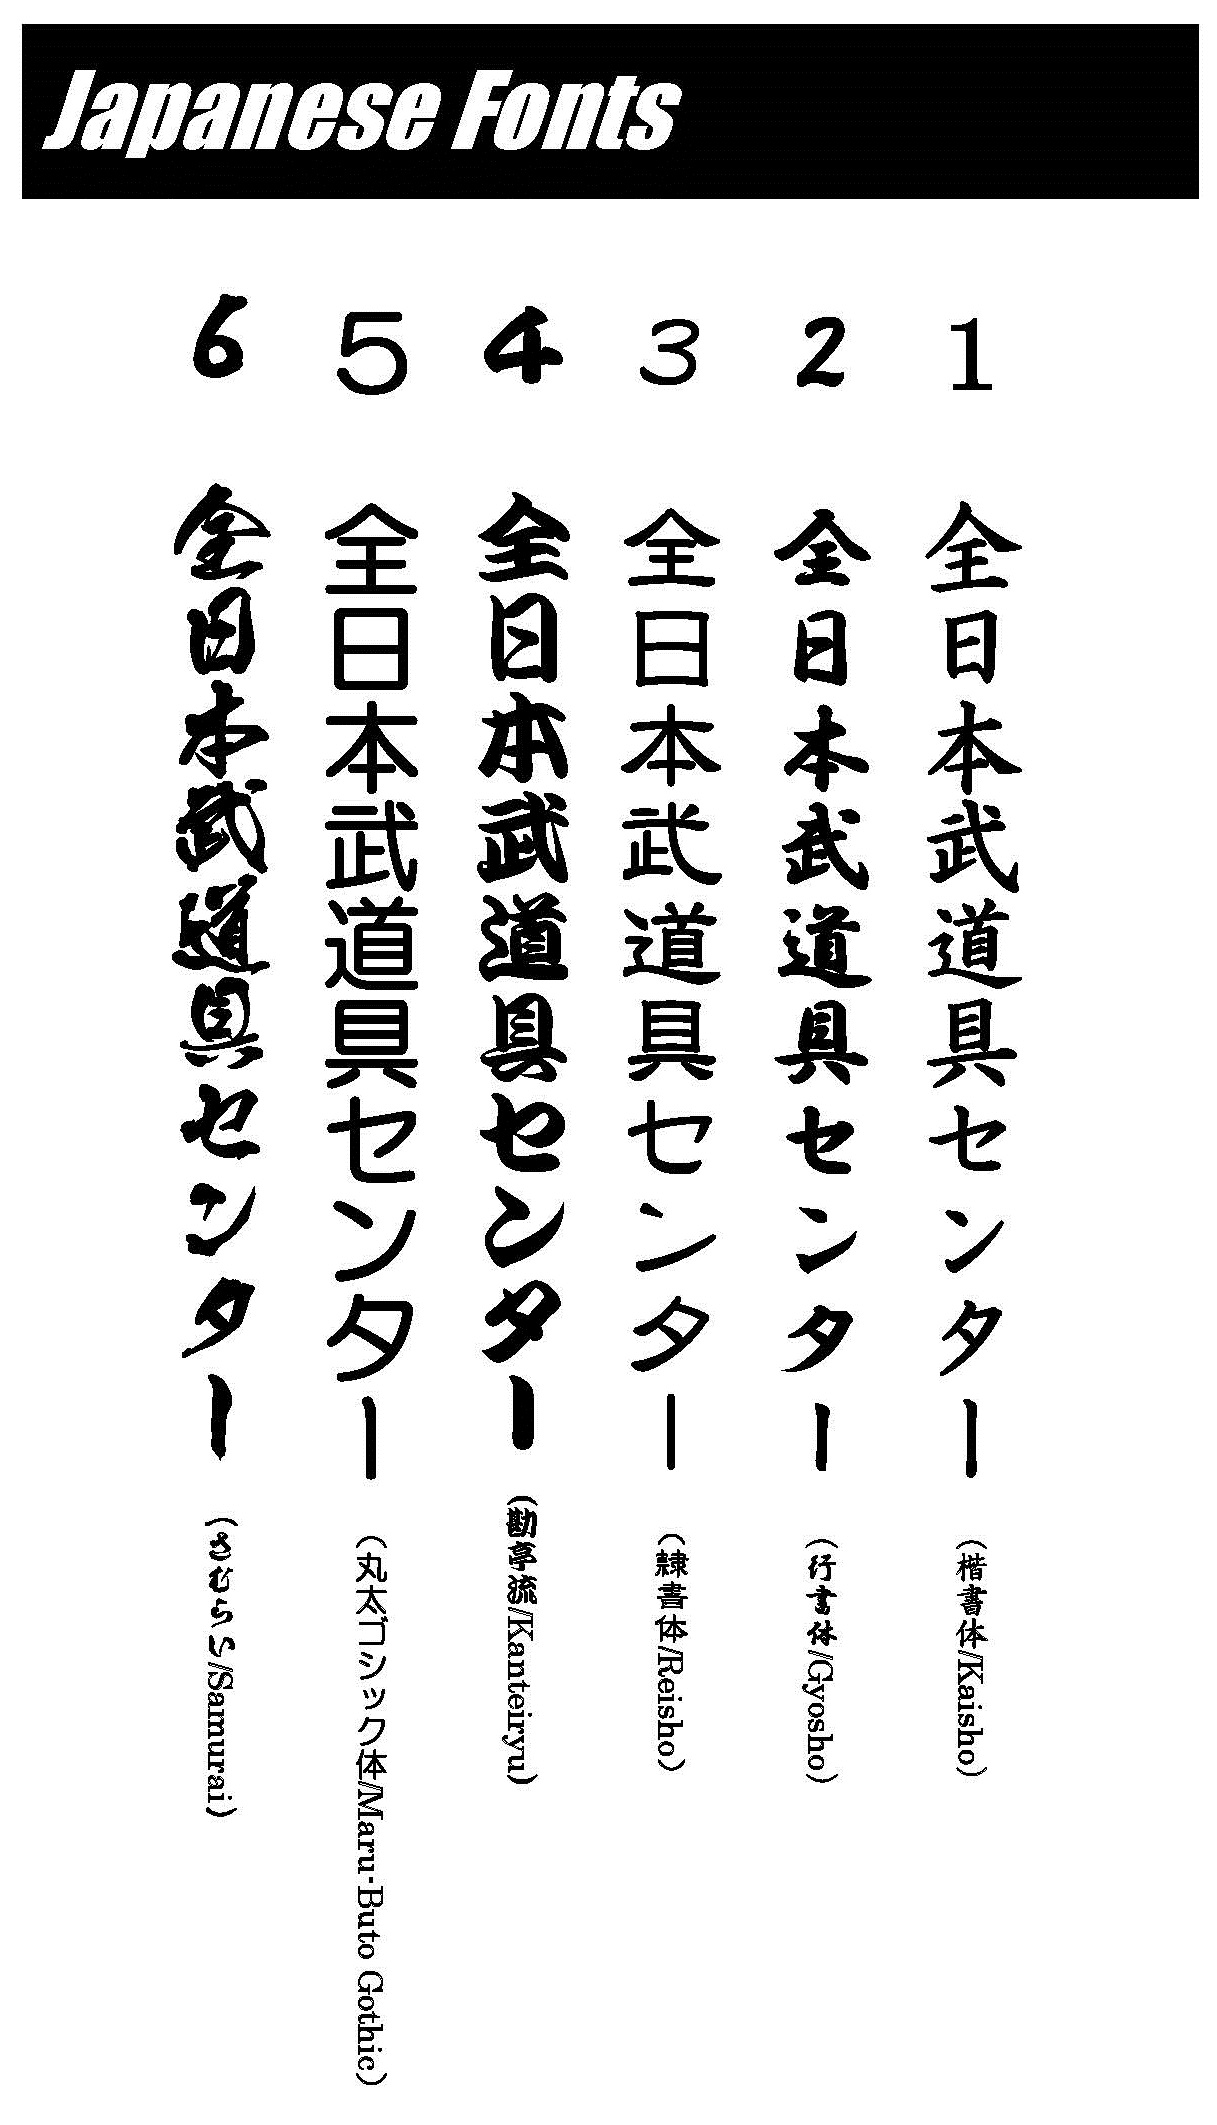 2014-02-07-new-japanese-font-2014-04-11-updated-.jpg